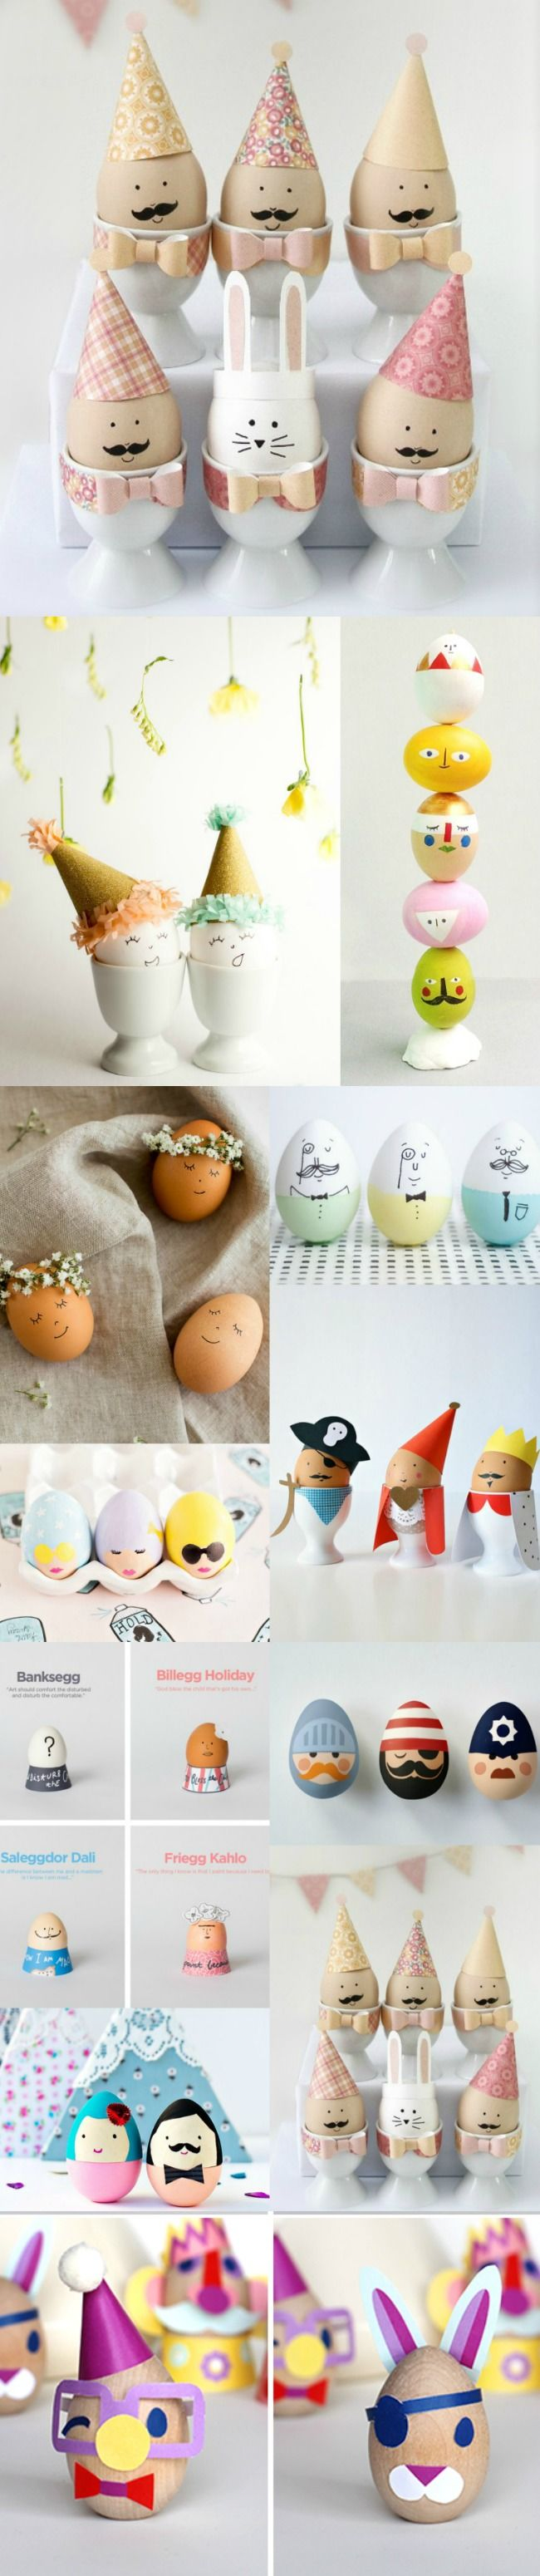 I have a new favorite thing, it's eggs with faces on them!! How cute are all these guys